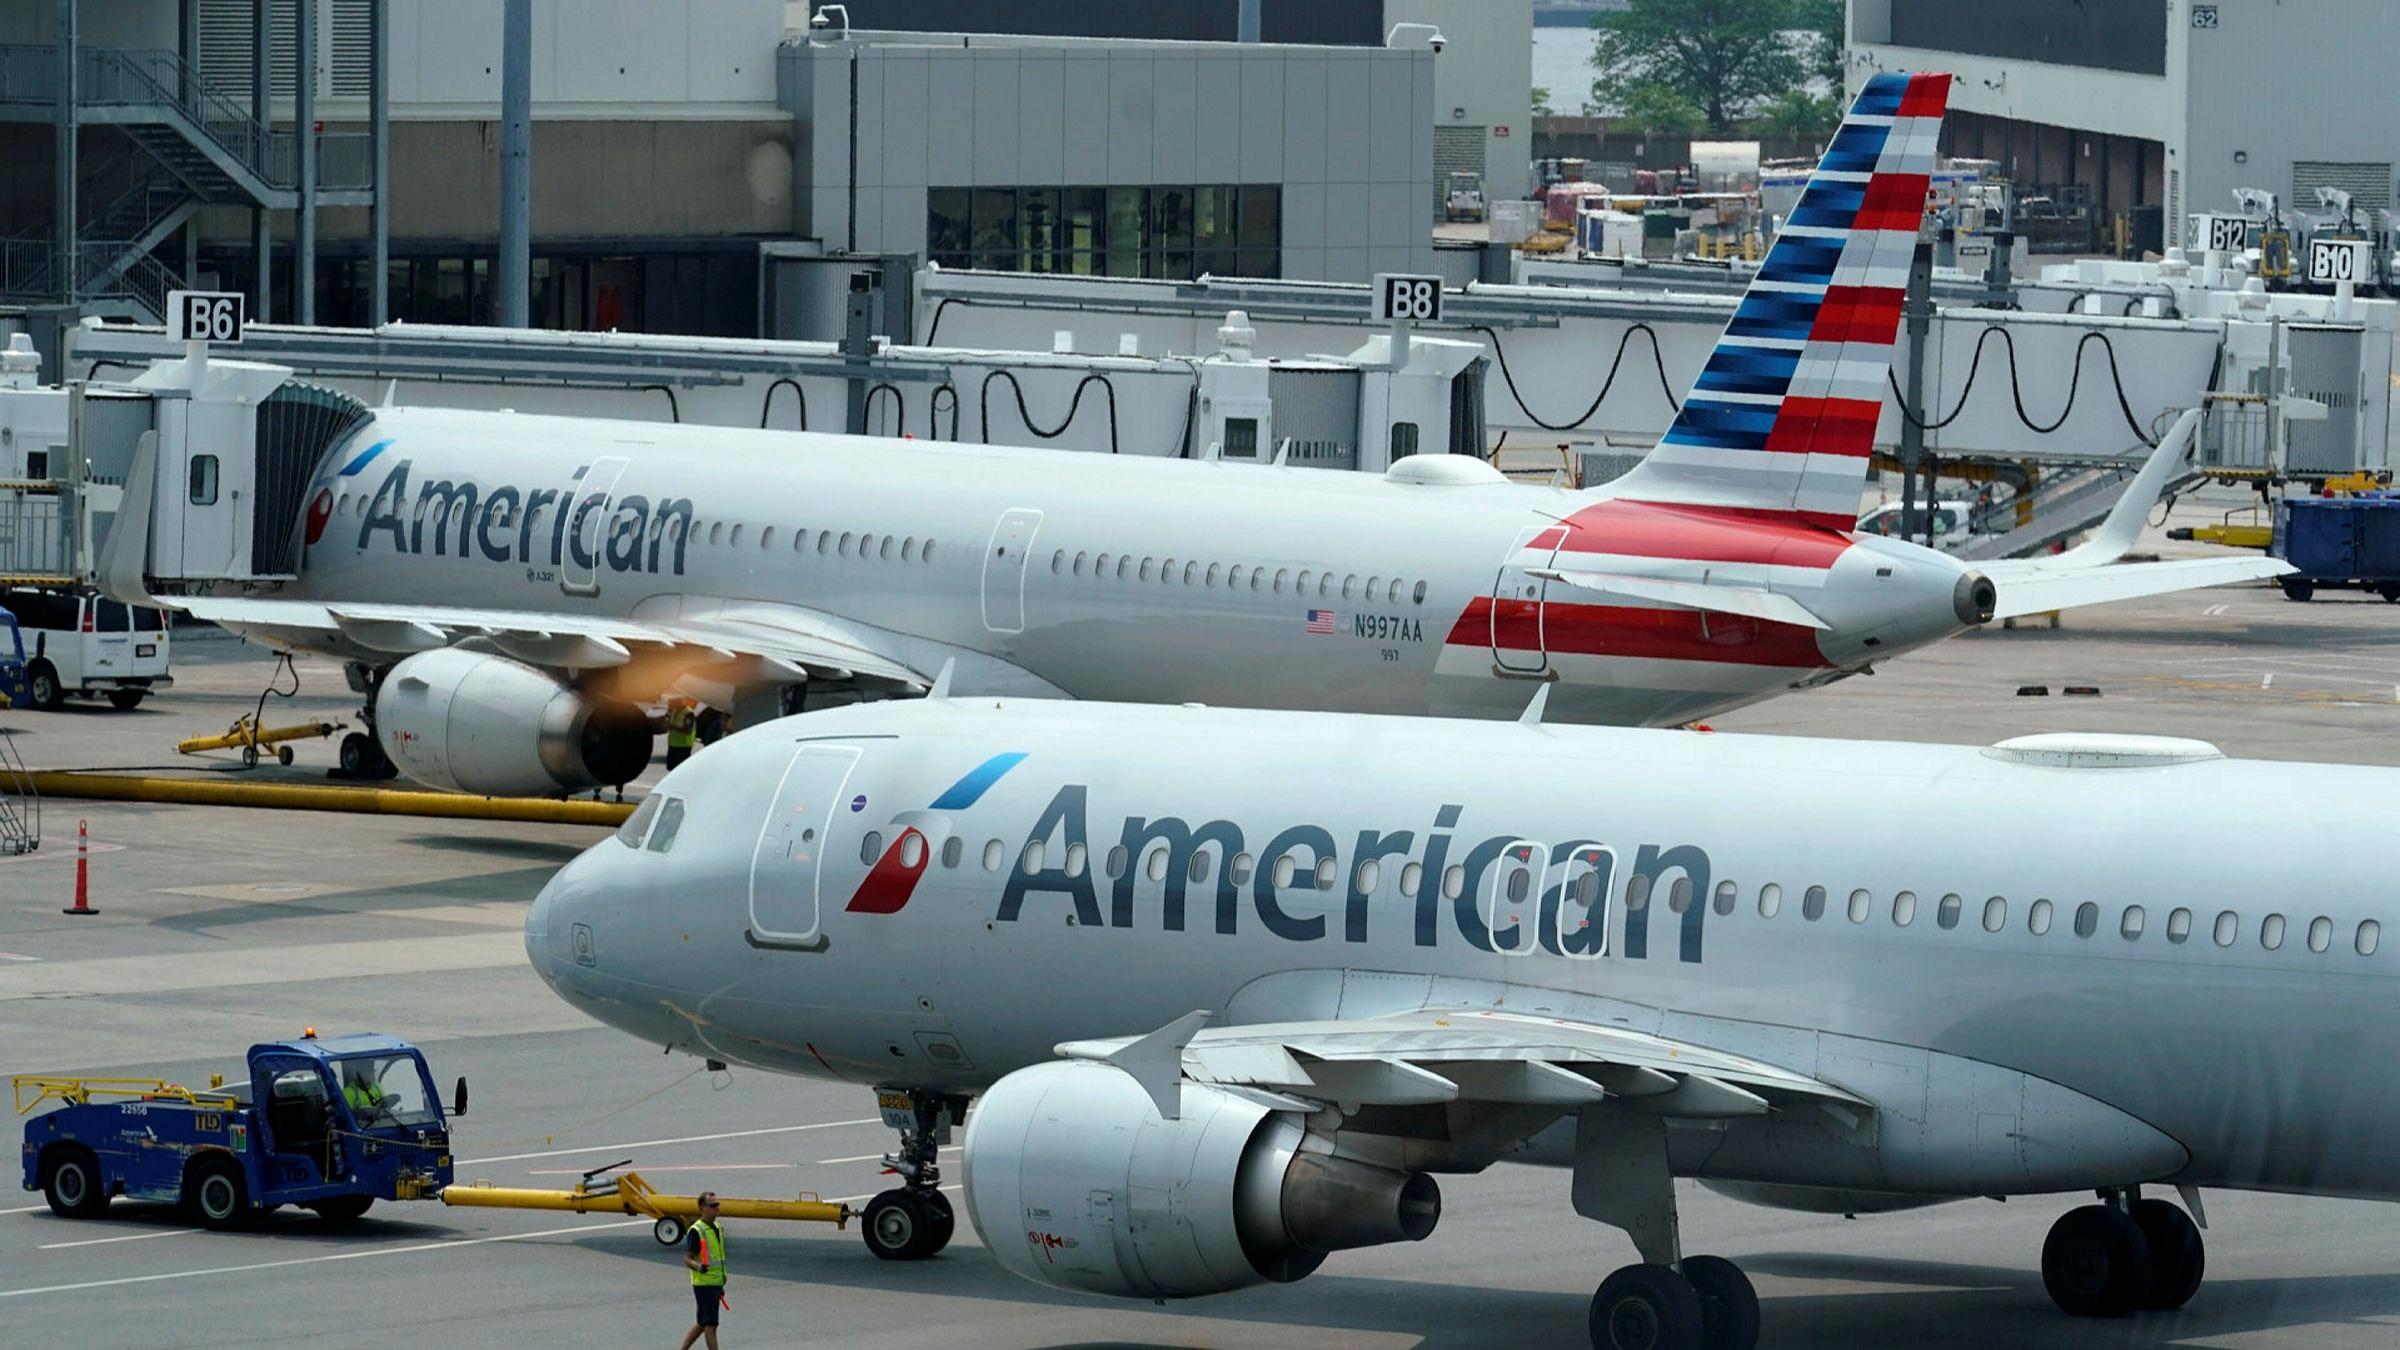 ft.com - Claire Bushey in Chicago and Philip Georgiadis in London - US airlines return to profit as European counterparts languish